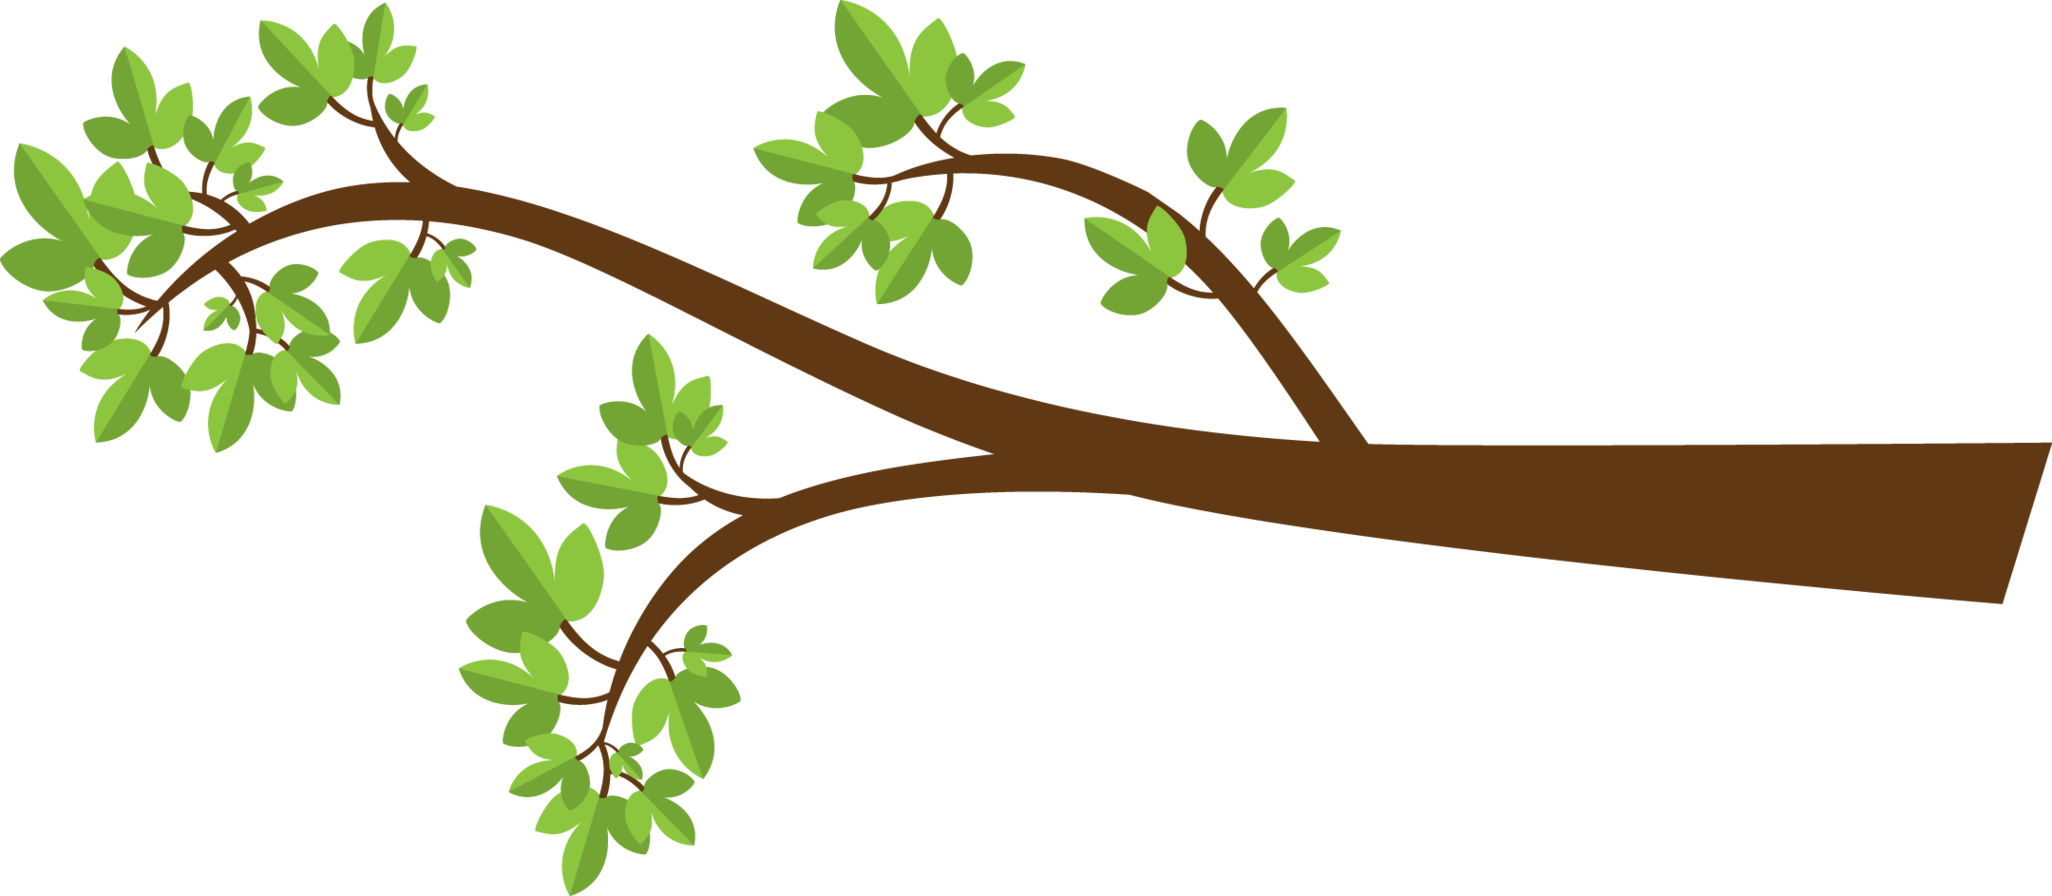 Branch clipart #6, Download drawings